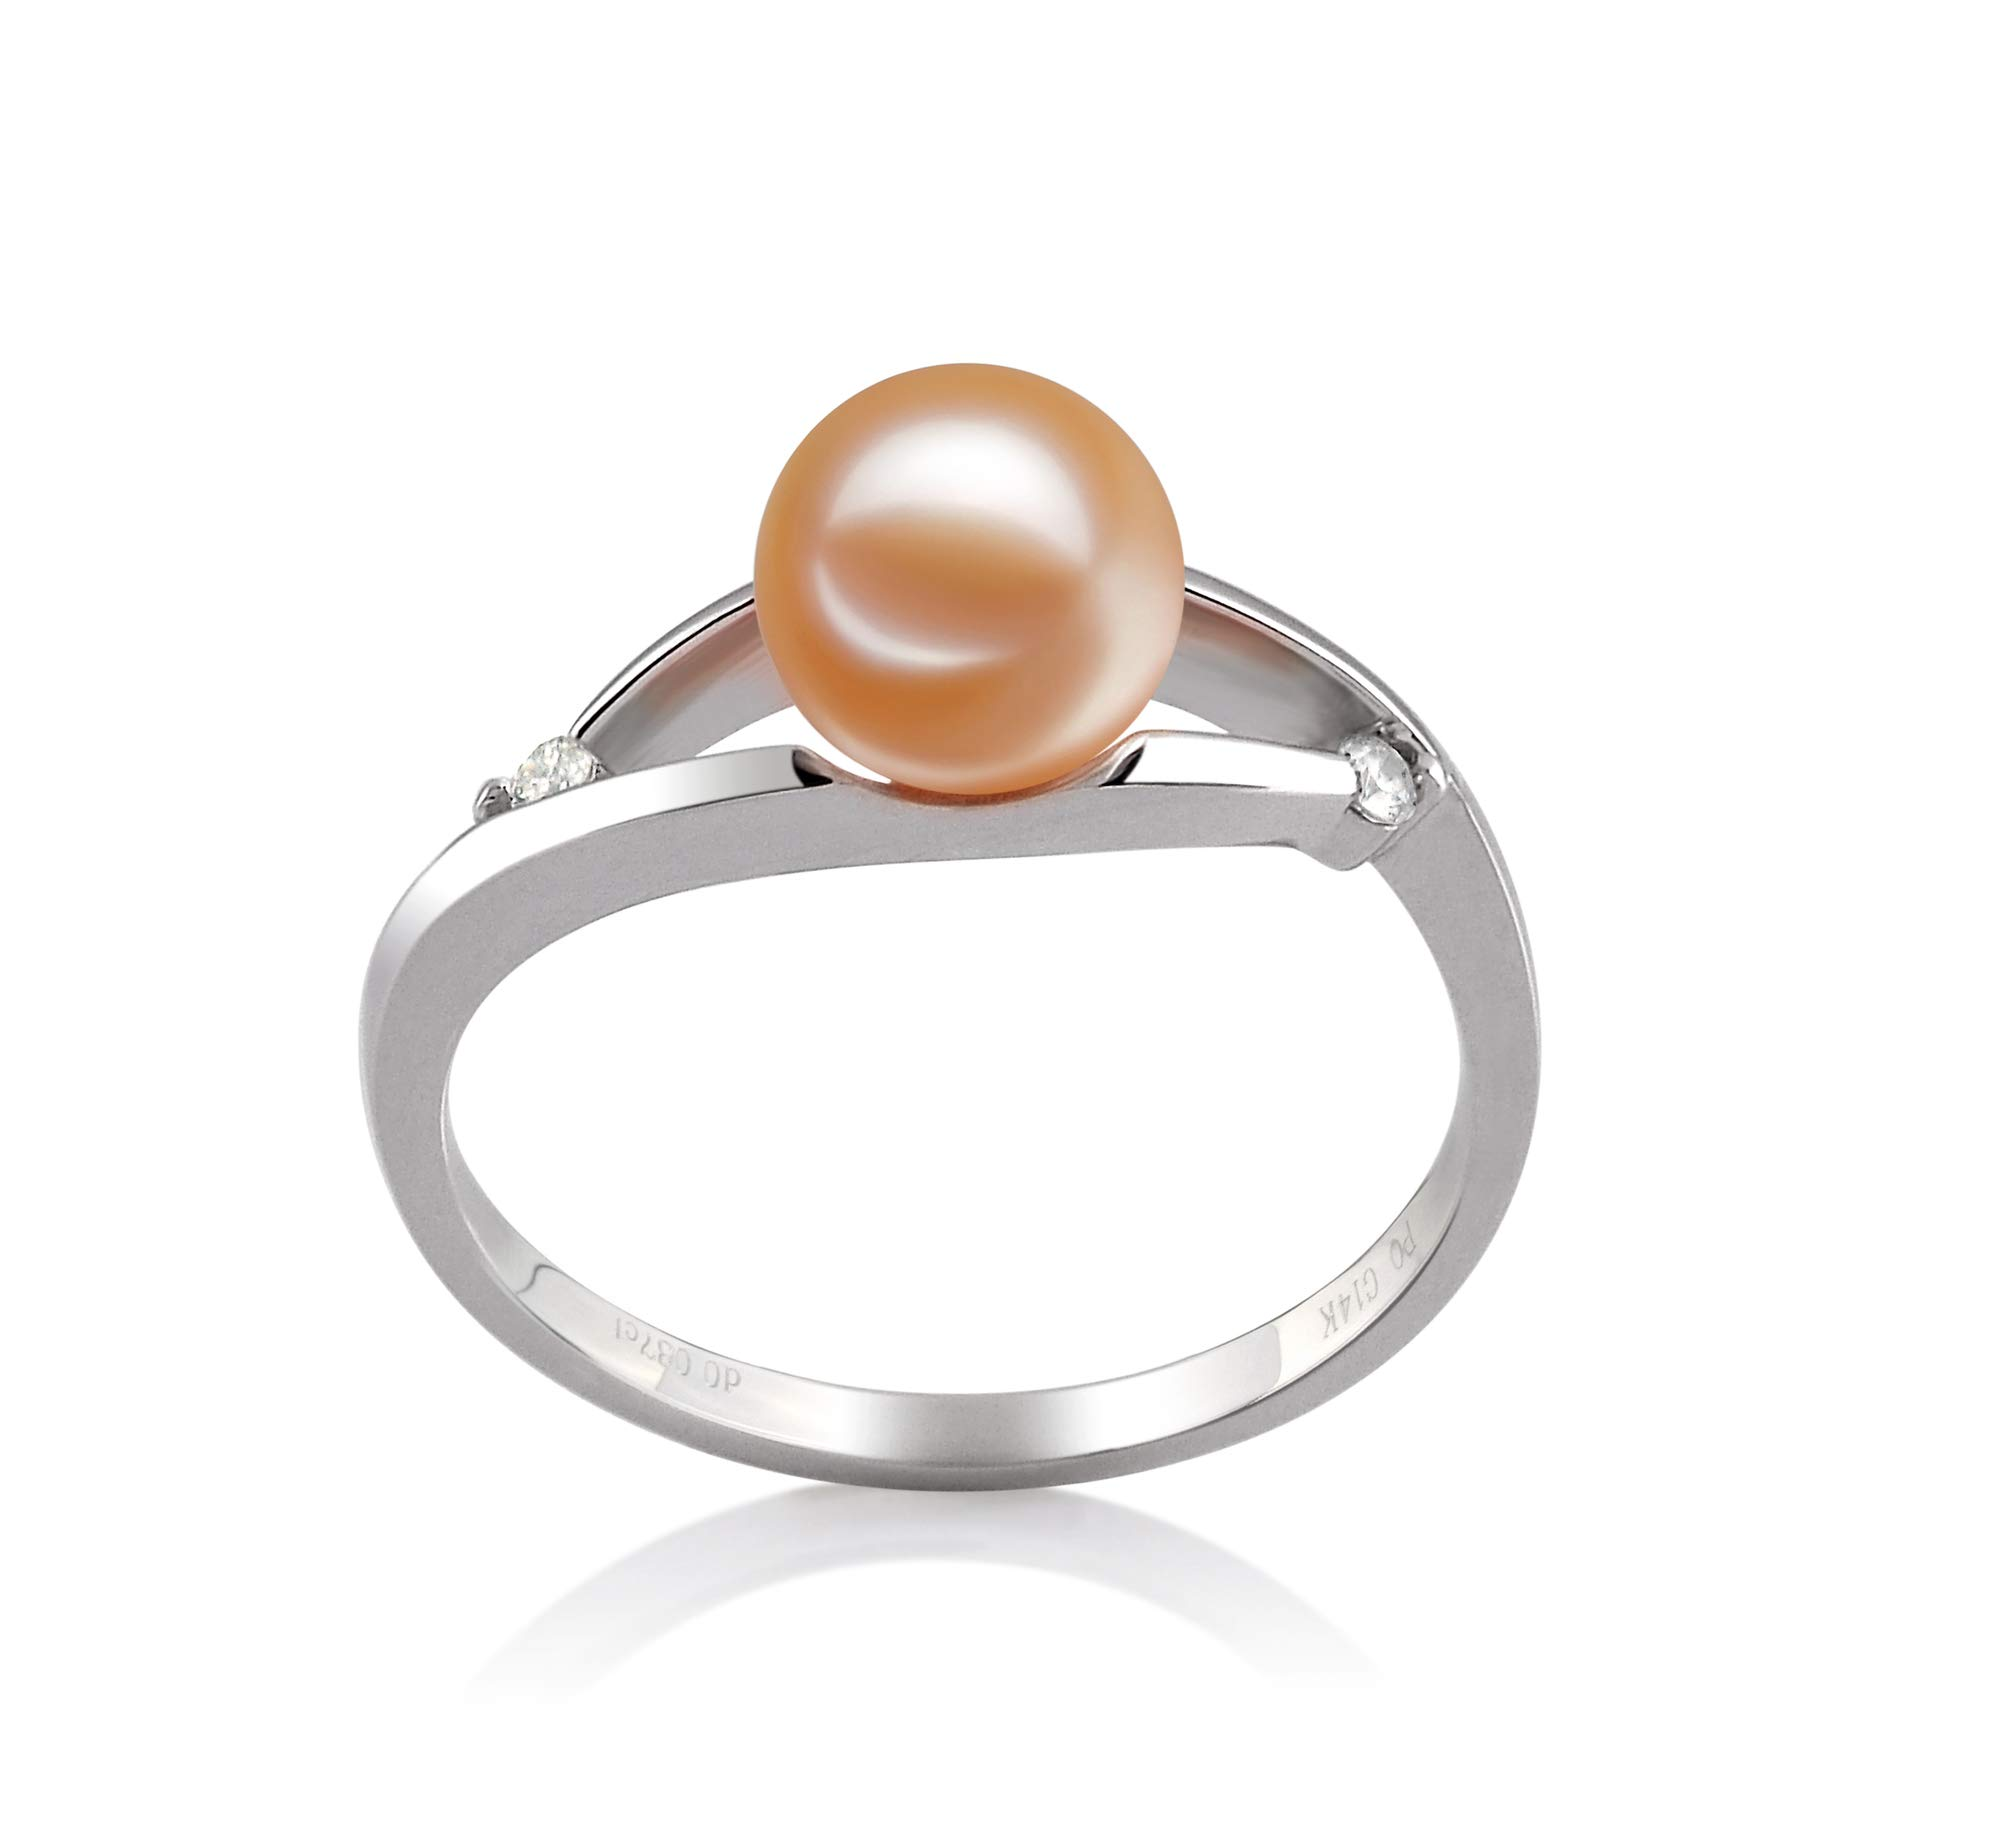 Tanya Pink 6-7mm AAAA Quality Freshwater 14K White Gold Cultured Pearl Ring For Women - Size-7 by PearlsOnly